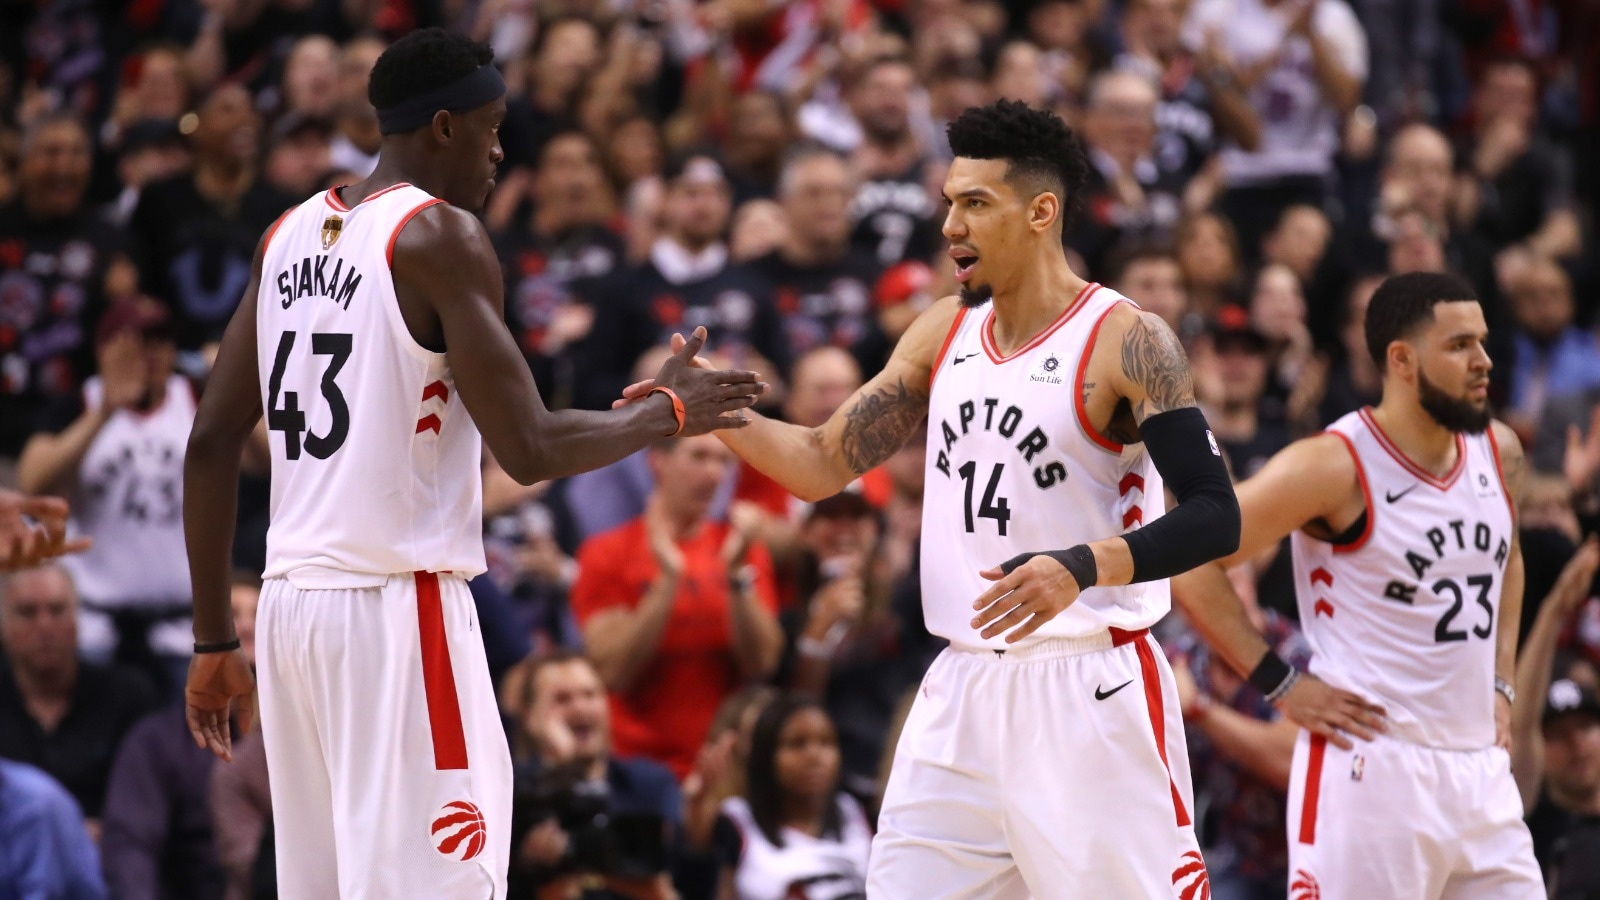 Pascal Siakam #43 and Danny Green #14 of the Toronto Raptors celebrate the play against the Golden State Warriors in the second half during Game One of the 2019 NBA Finals at Scotiabank Arena on May 30, 2019 in Toronto, Canada.